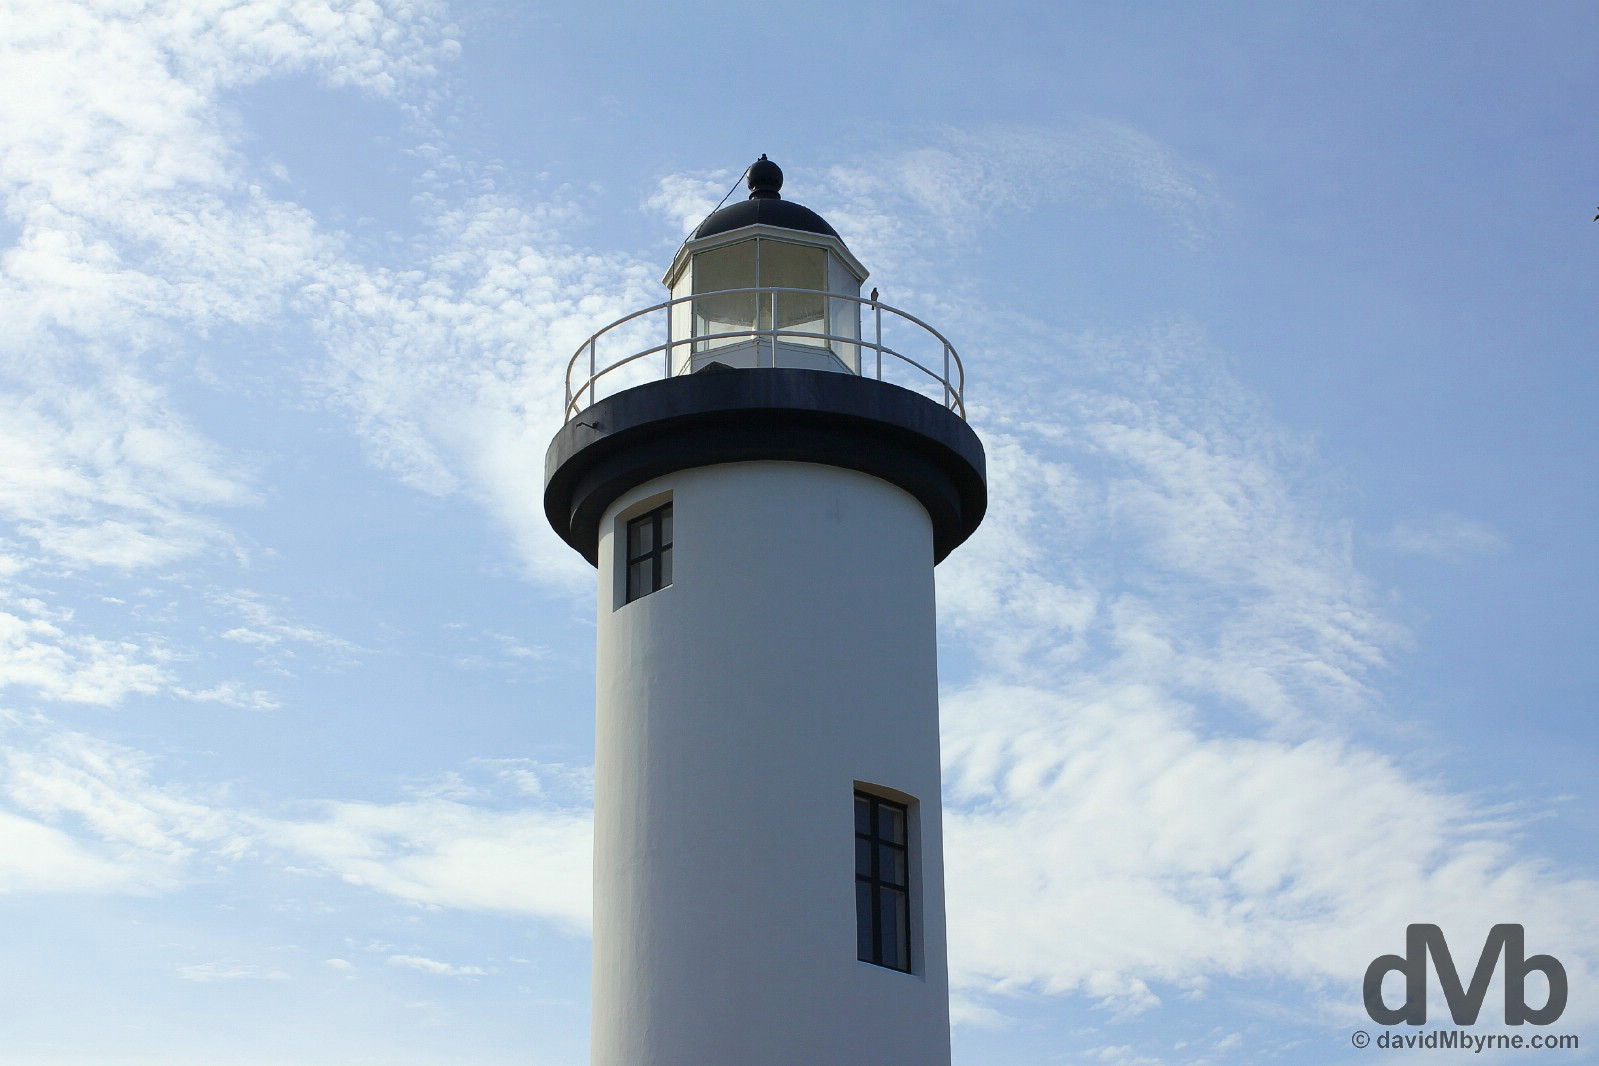 The lighthouse in Rincon, western Puerto Rico, Greater Antilles. June 4, 2015.